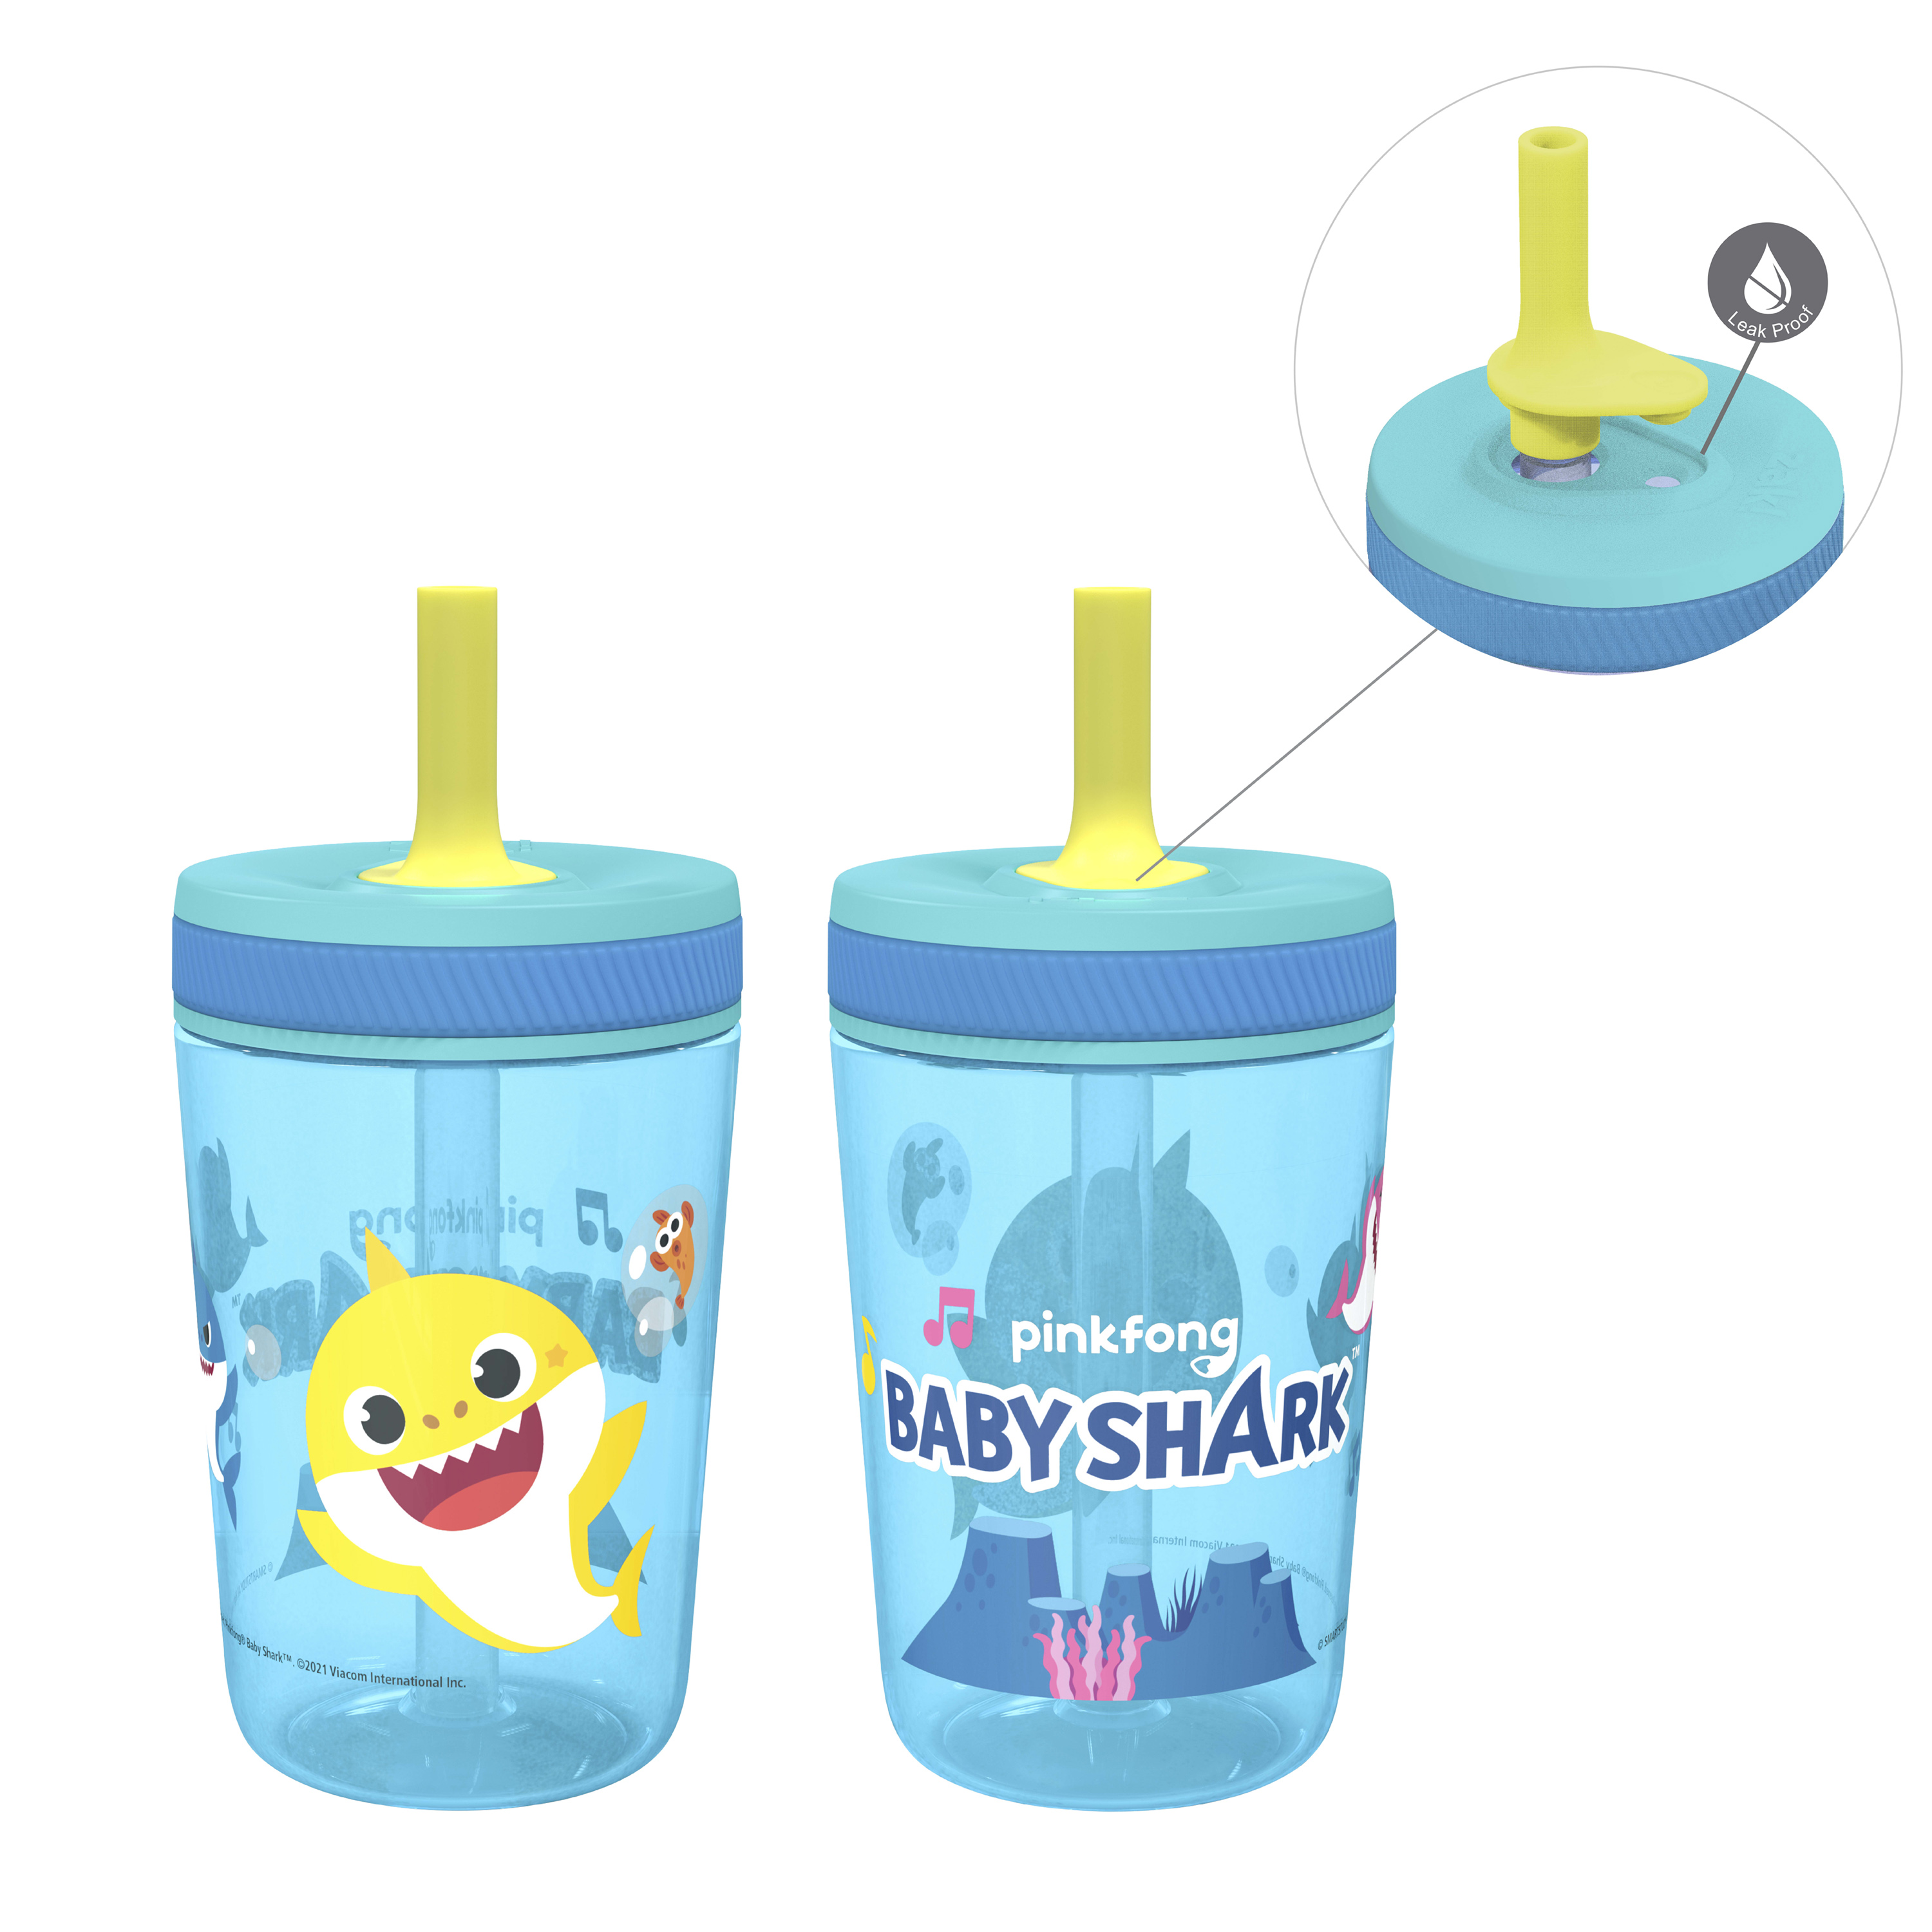 Pinkfong 15  ounce Plastic Tumbler with Lid and Straw, Baby Shark, 2-piece set slideshow image 1